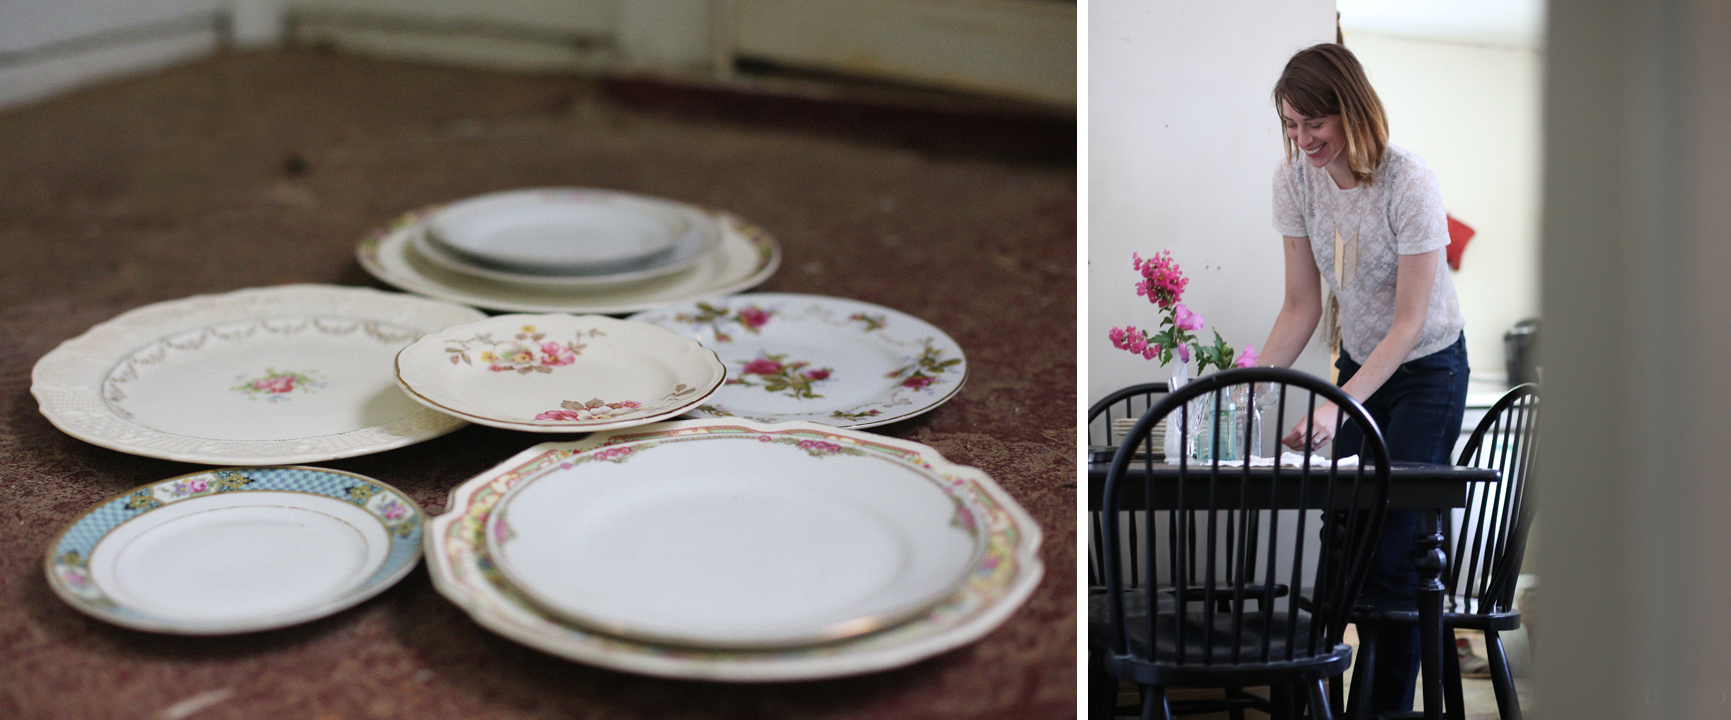 vintage charlotte china and a portrait of Amy in her home